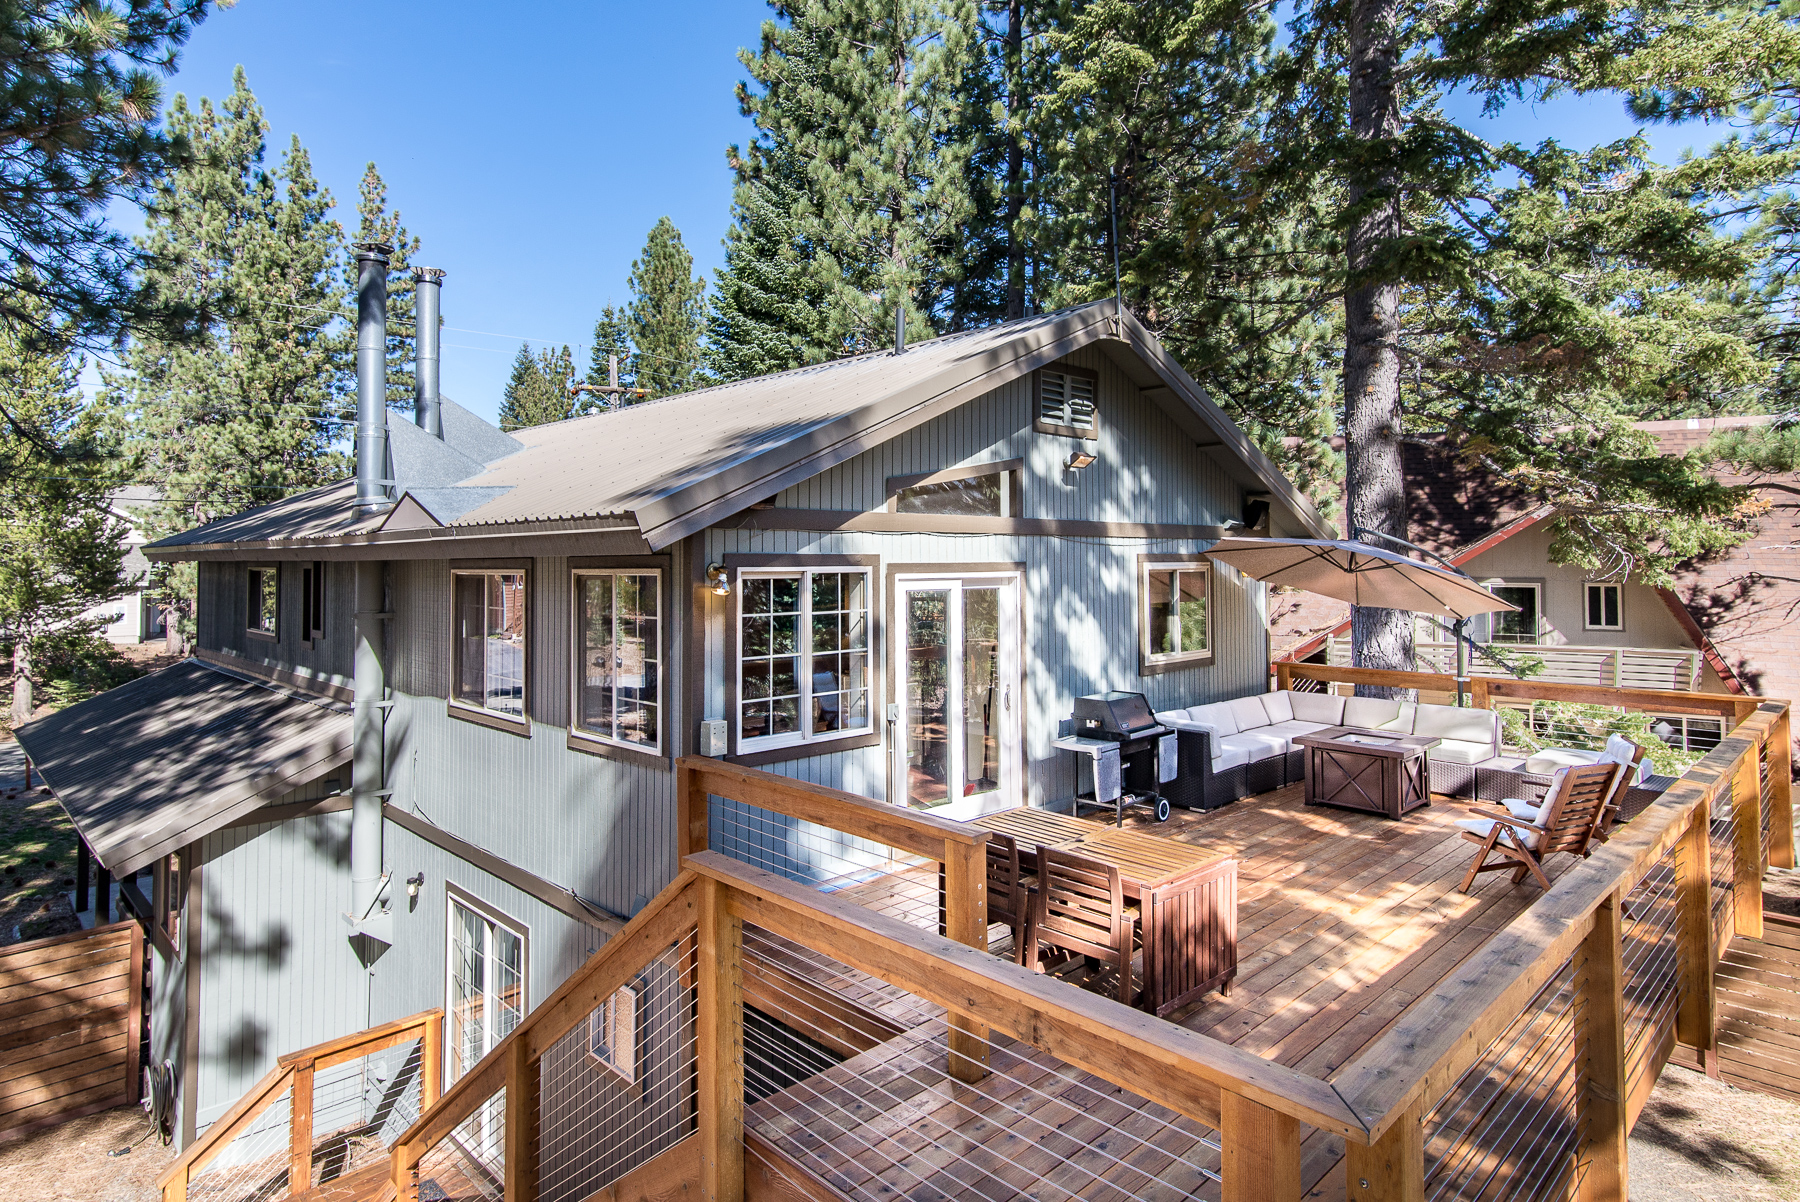 South lake tahoe cabin in the pines ra89844 redawning Rent a cabin in lake tahoe ca